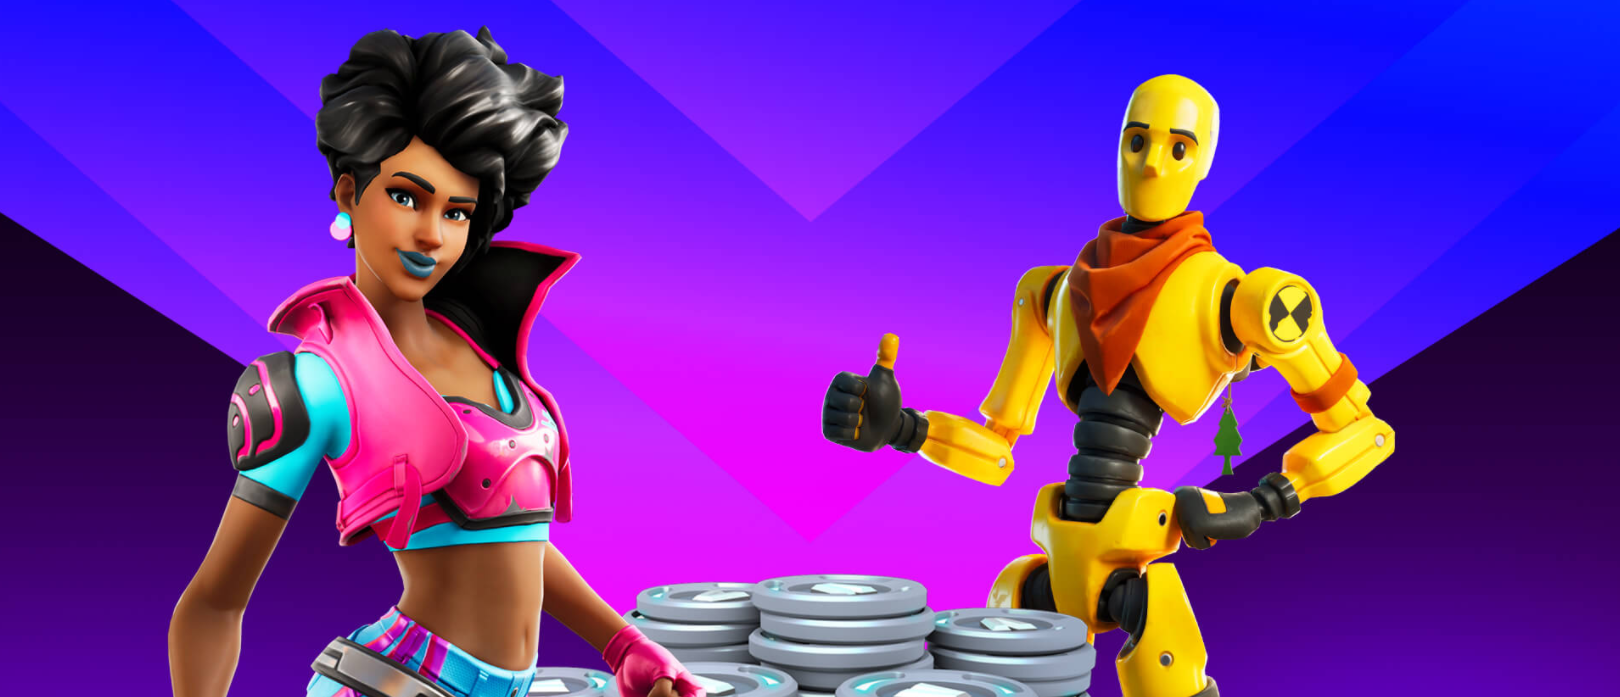 Epic is daring Apple and Google to ban Fortnite from their app stores — and Apple just took the bait